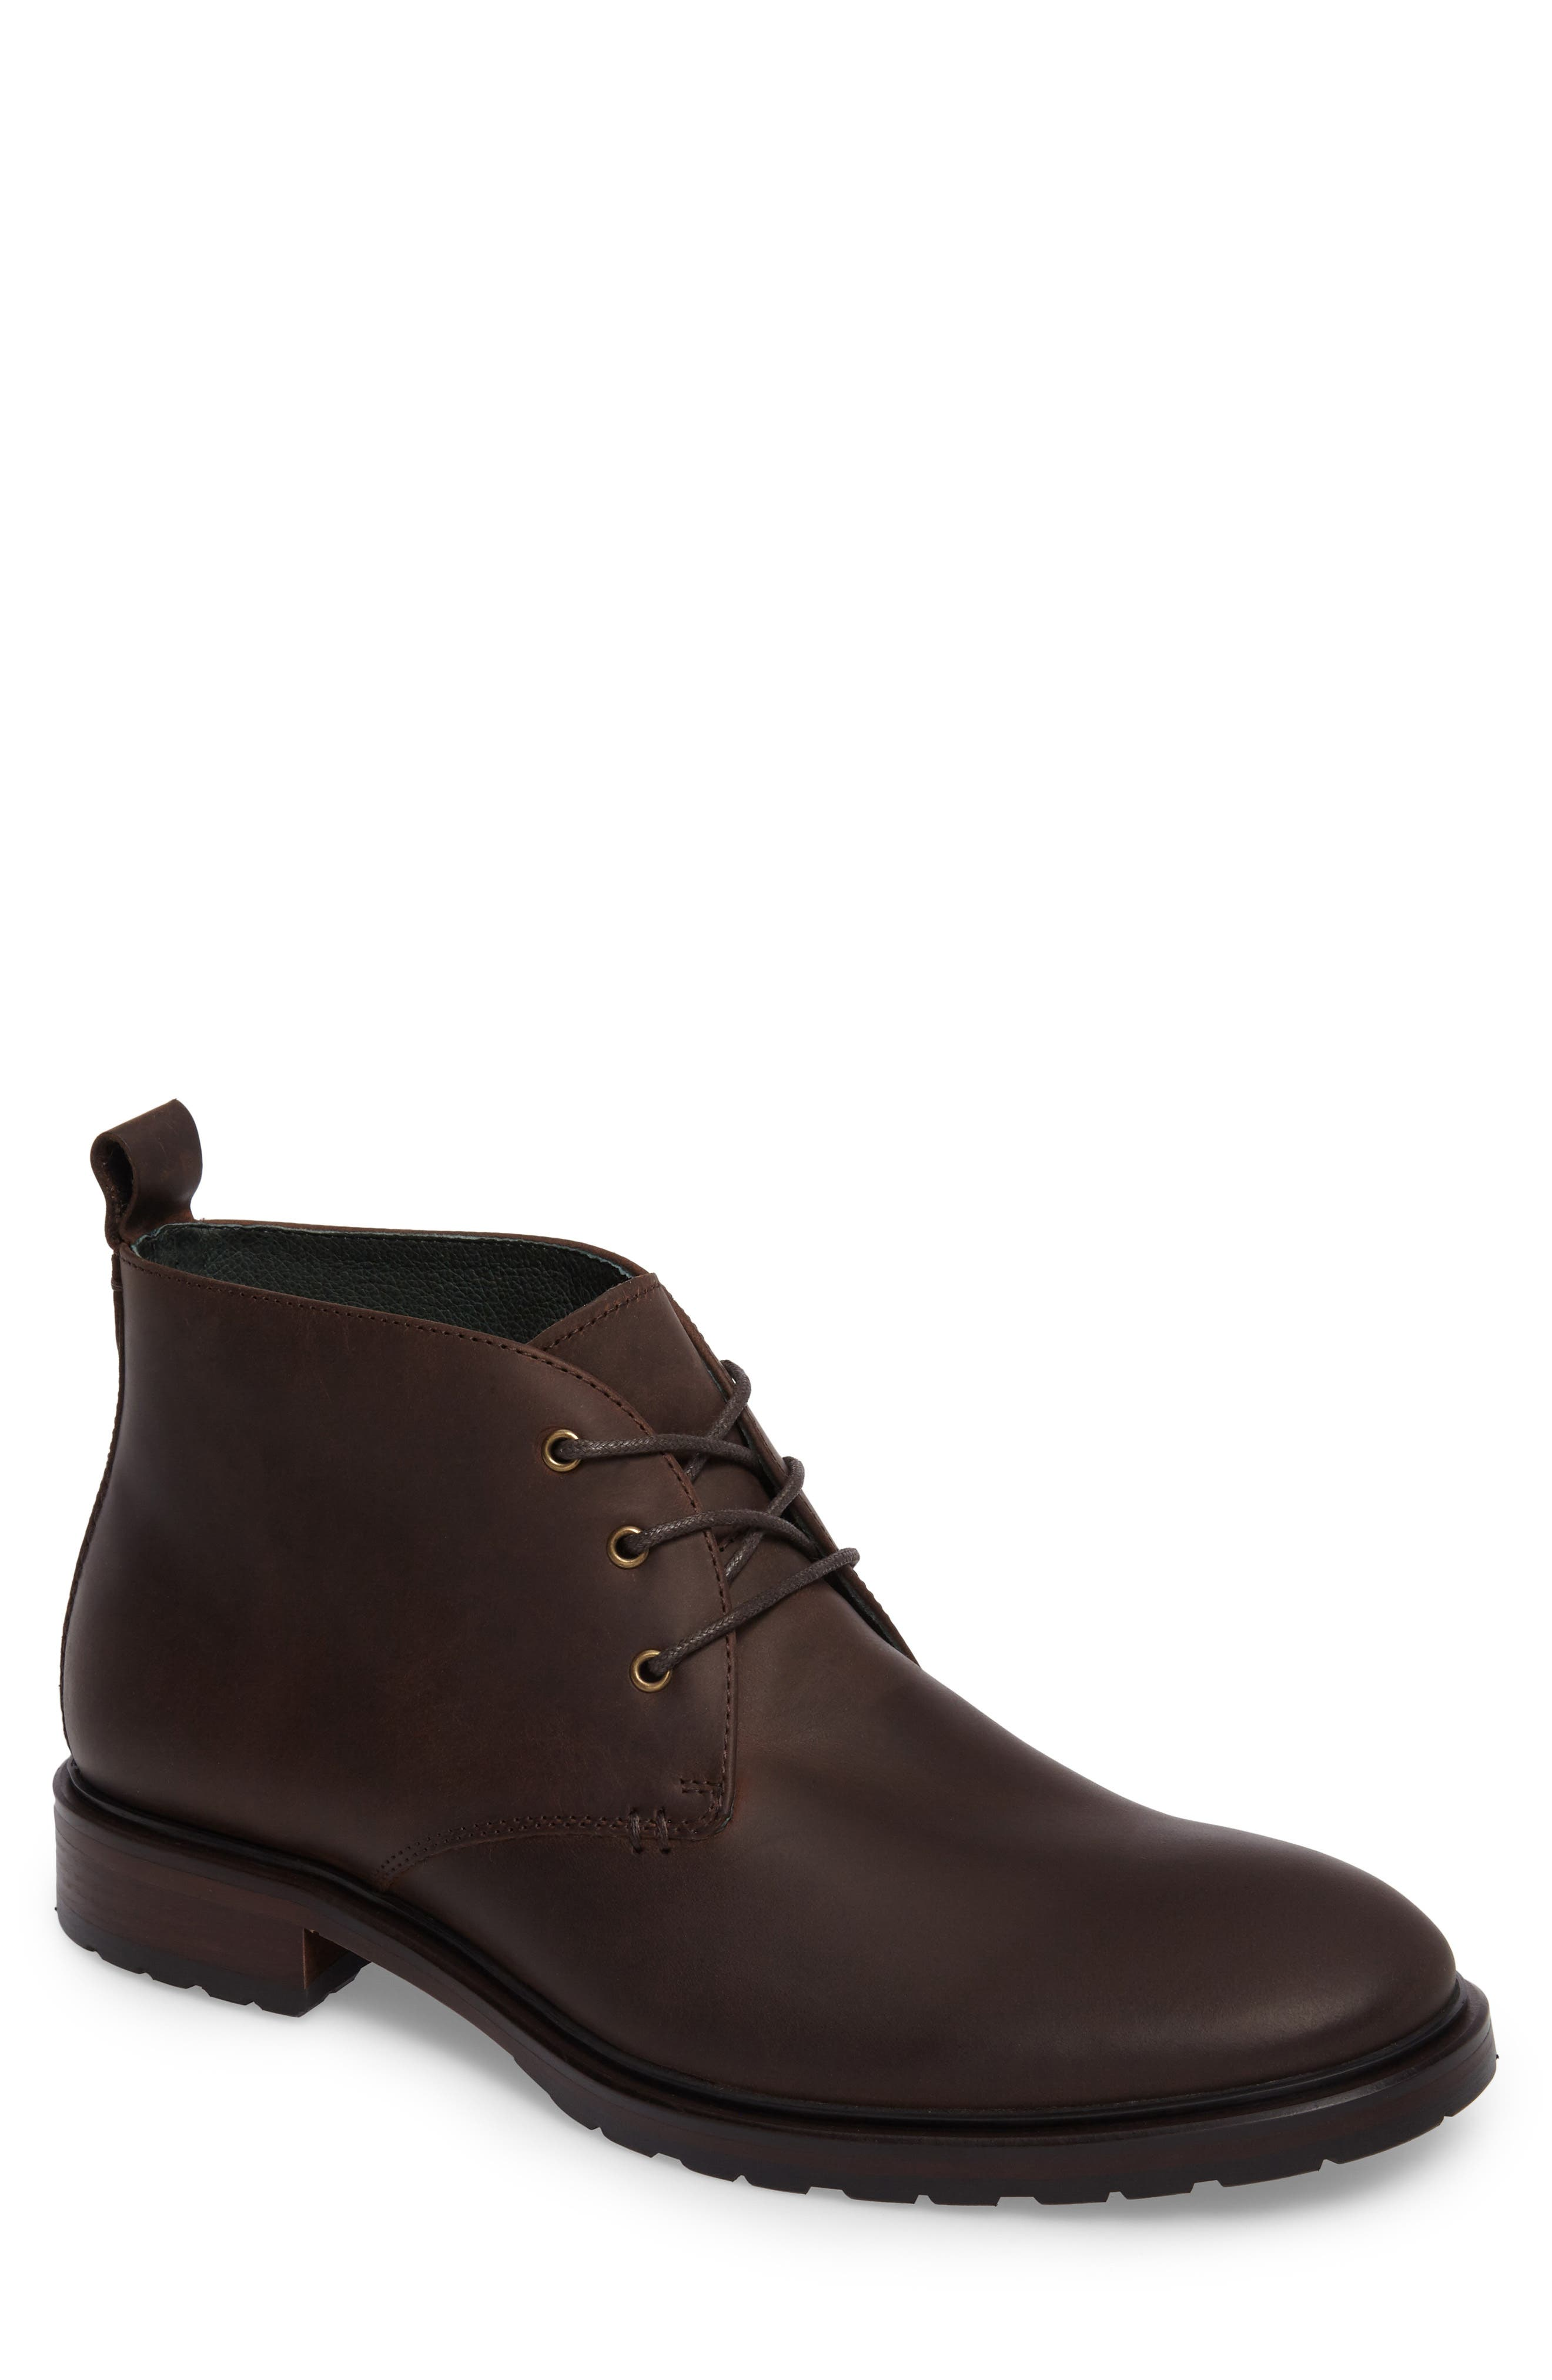 Myles Chukka Boot,                         Main,                         color, Dark Brown Leather